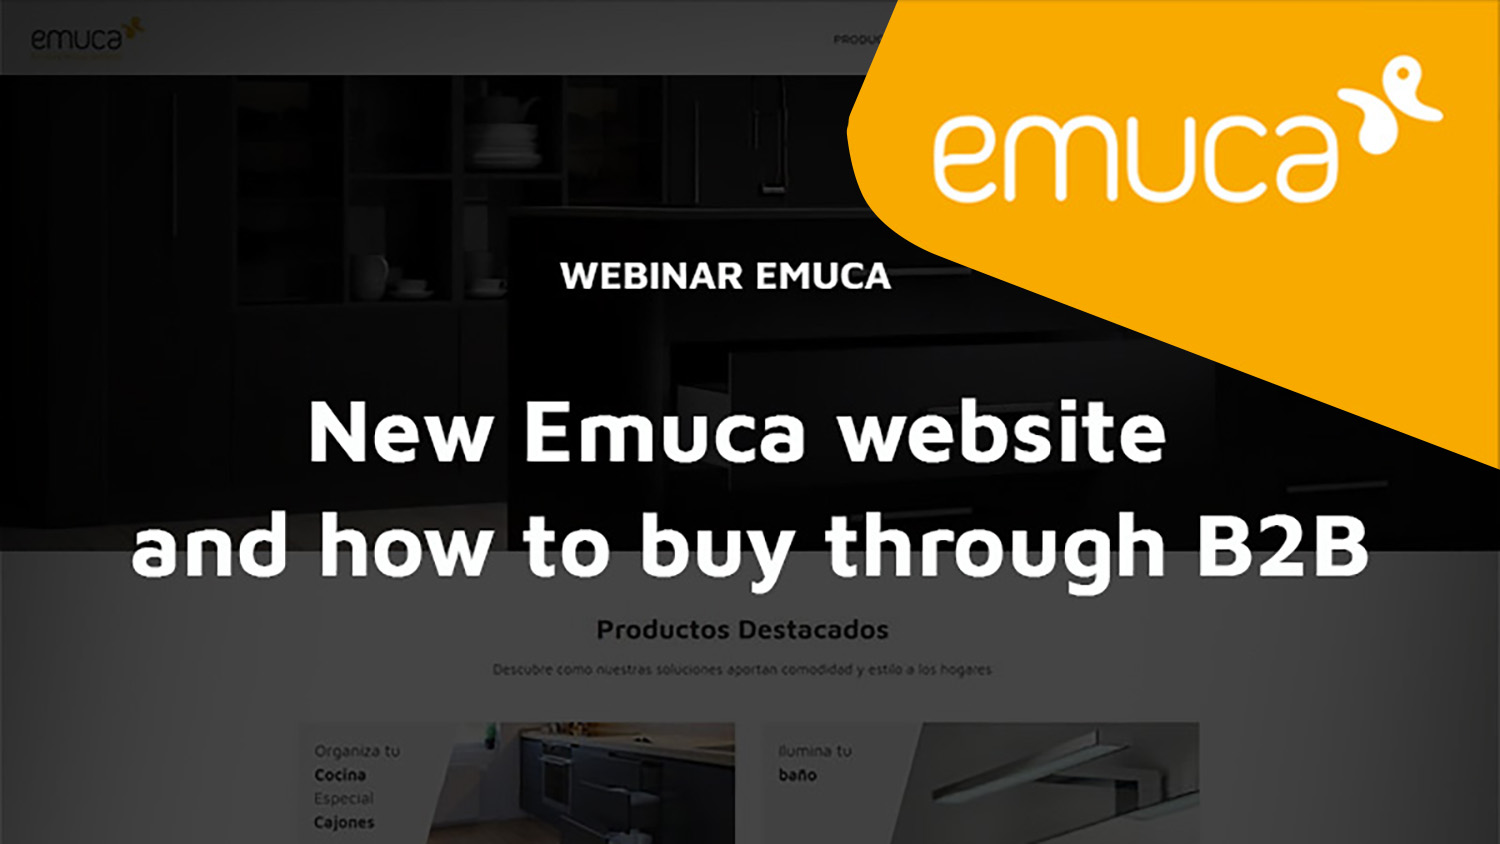 New Emuca website and how to buy through B2B